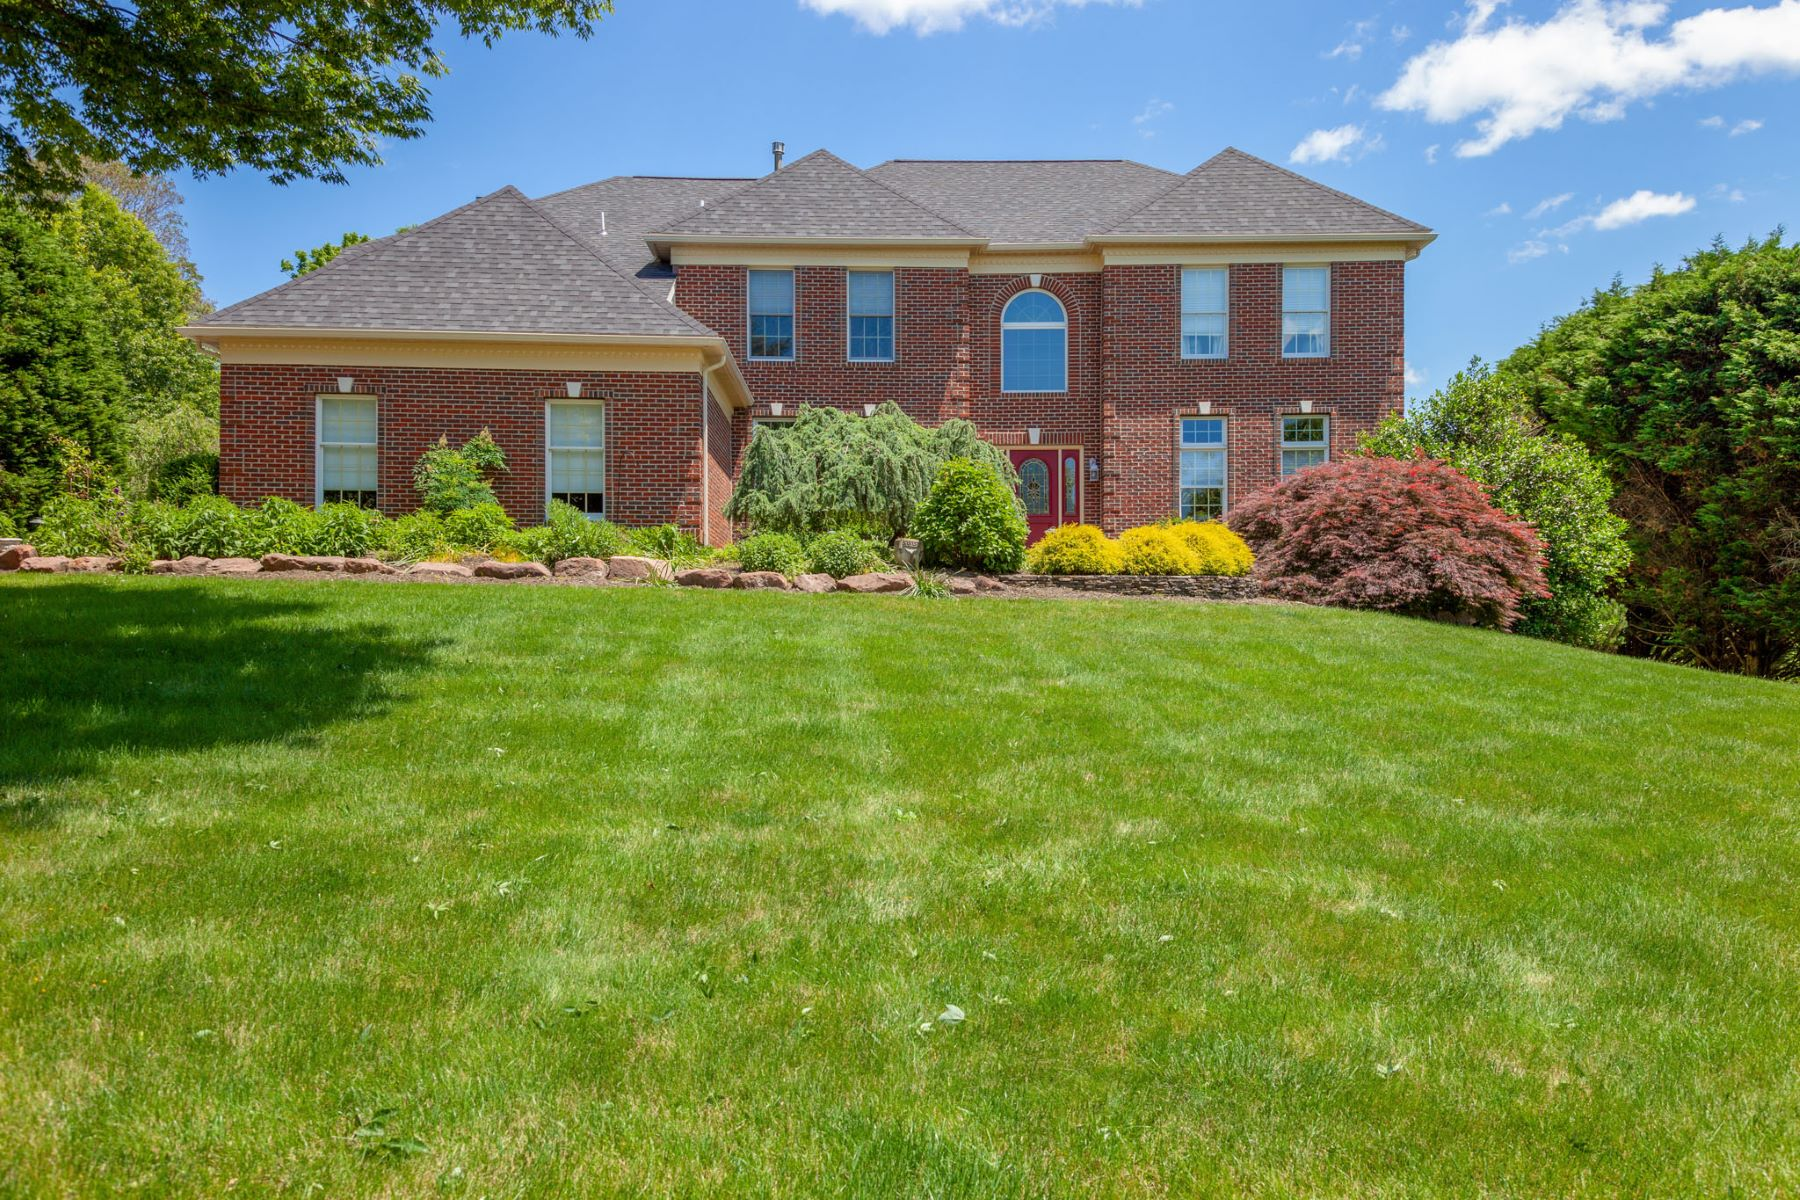 Single Family Homes for Sale at 287 Dressage Ct., West Chester, PA 19382 287 Dressage Ct. West Chester, Pennsylvania 19382 United States